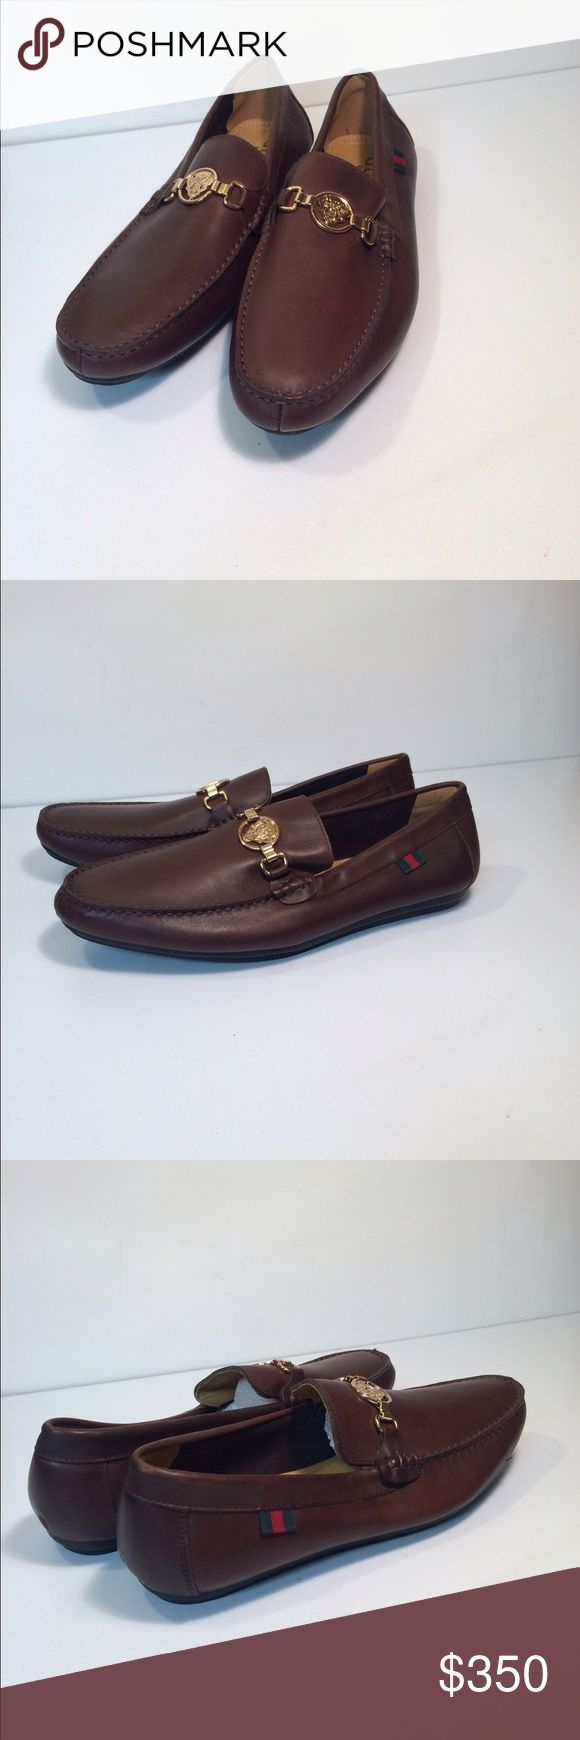 Gucci Men's Slip On Loafers Moccasins Shoes Gucci Men's Slip On Loafers Moccasins Shoes ... Size: EU 47 / US 13 ... Color: Brown ... Material: Leather ... Condition: New Without Box / Tags. Gucci Shoes Loafers & Slip-Ons